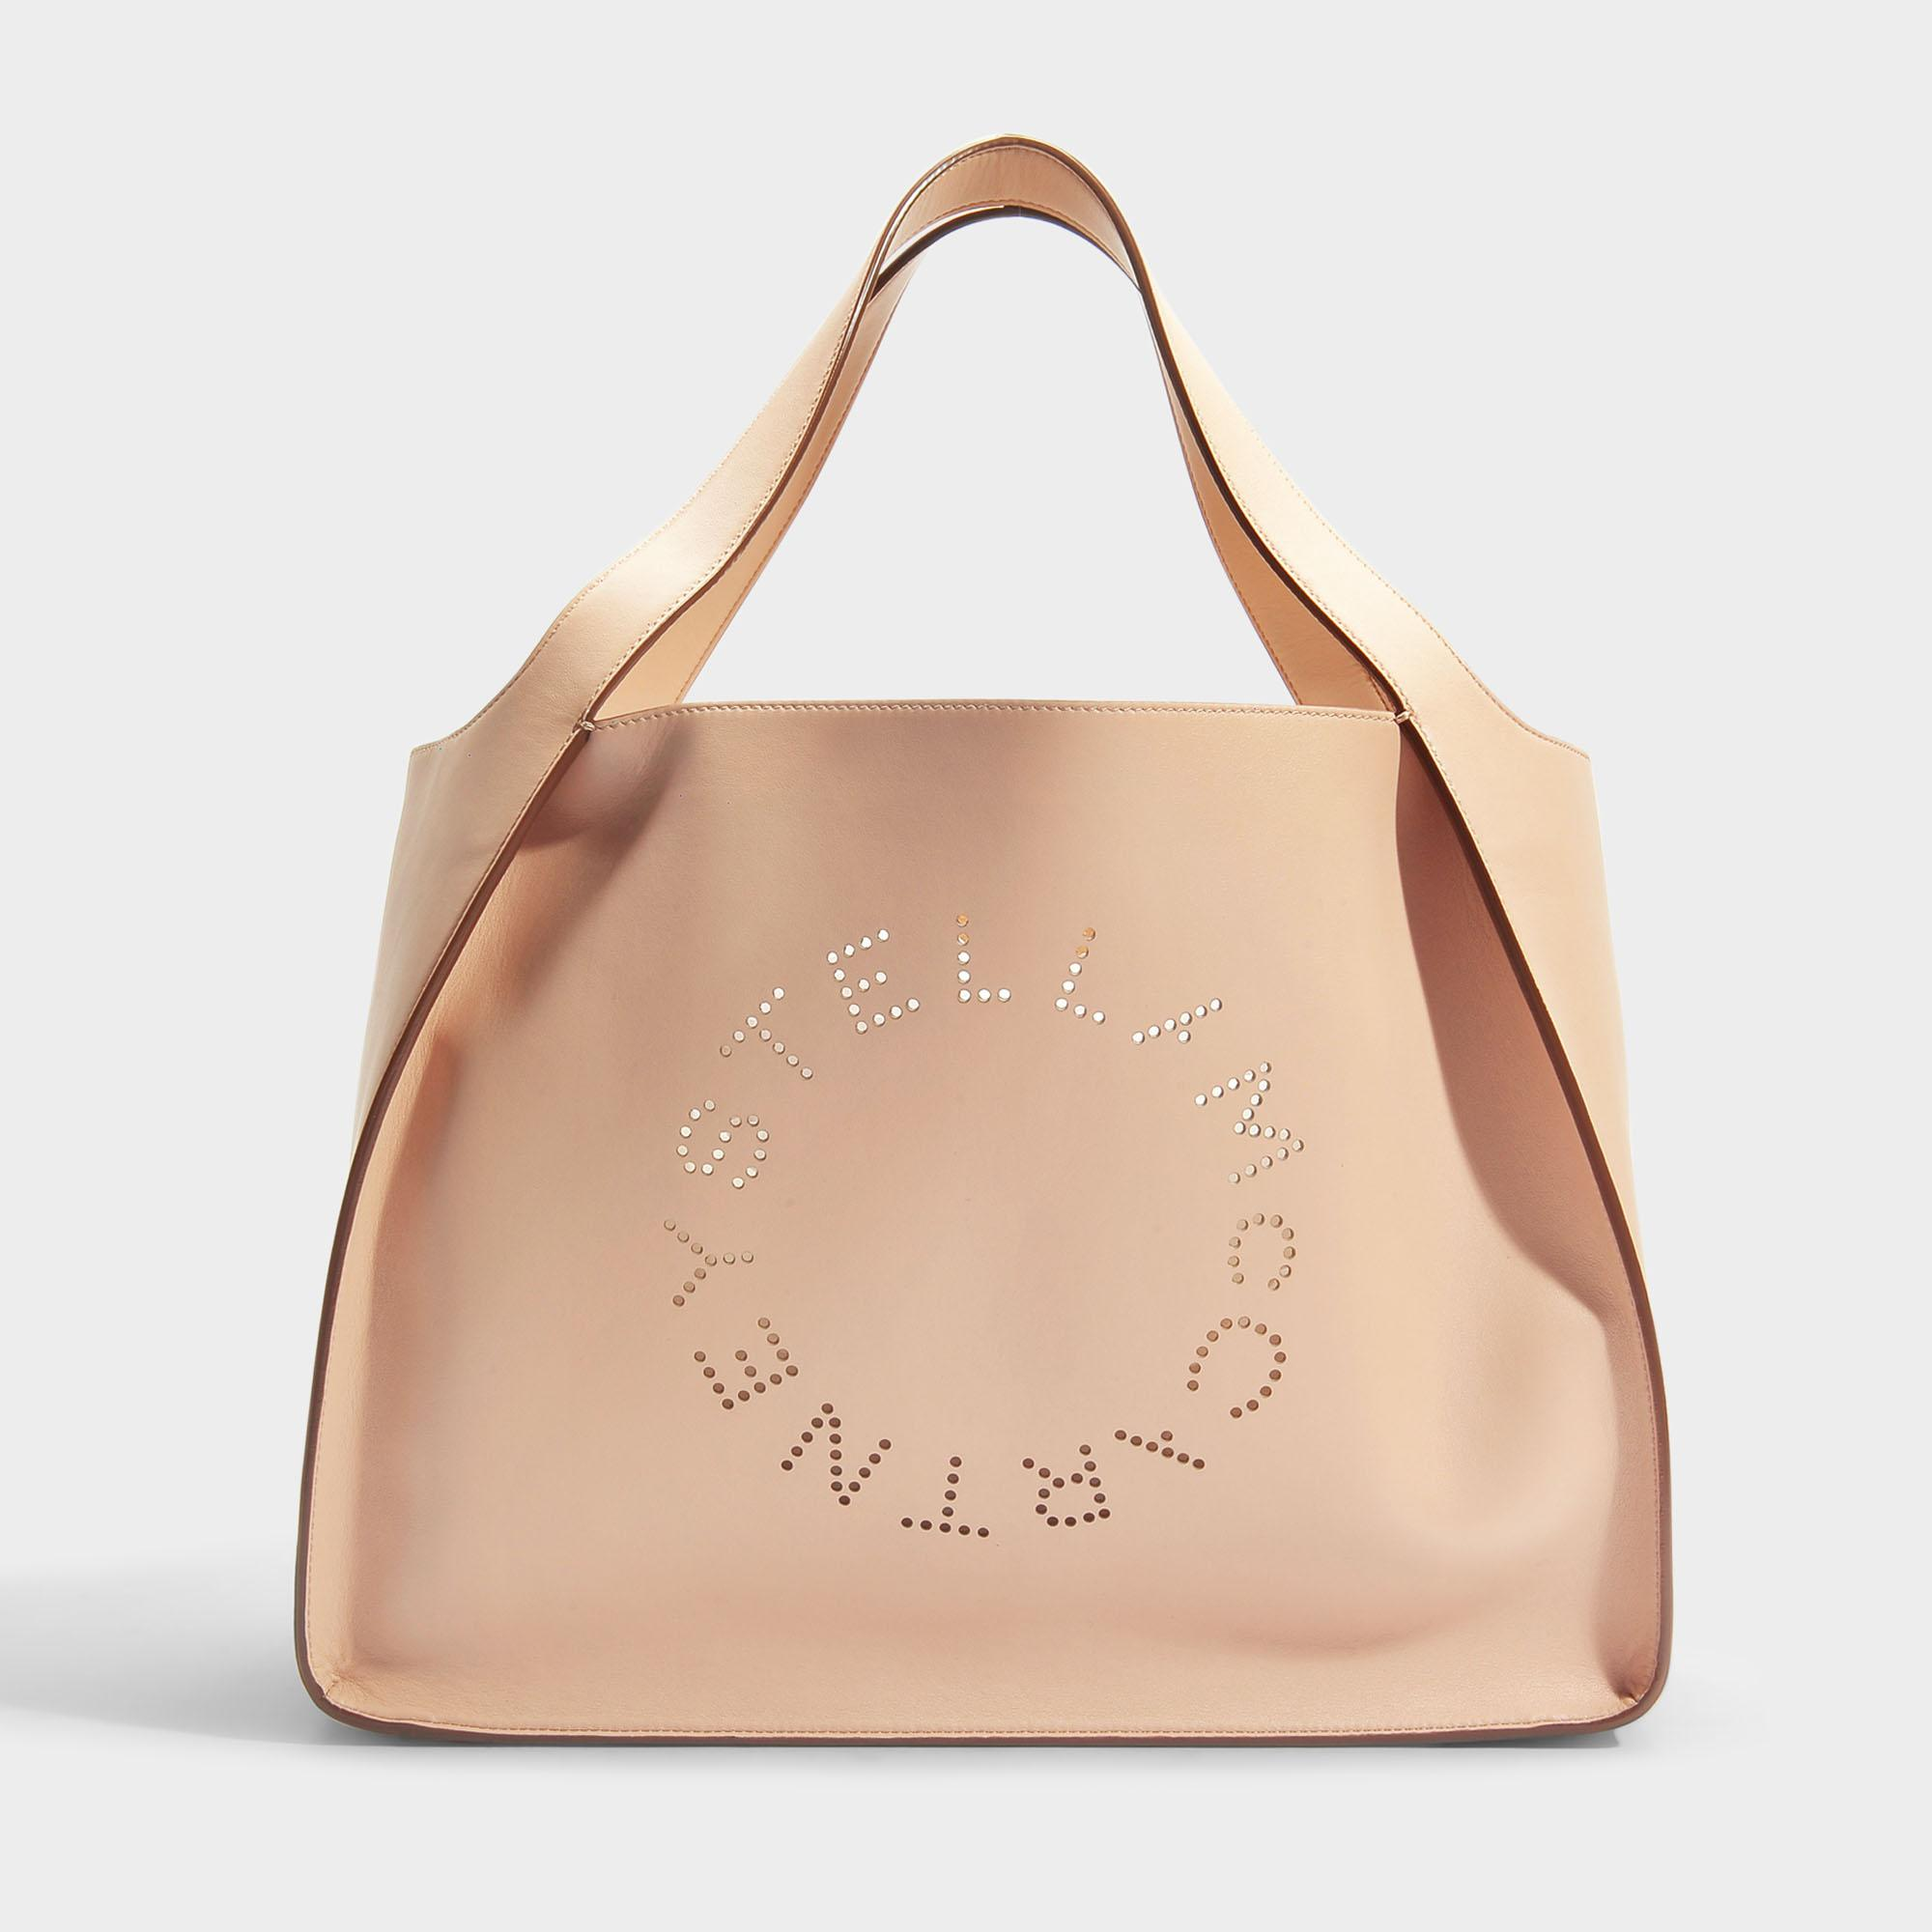 Stella Mccartney | Logo Bag Alter Nappa Small Tote In Black Synthetic  Material in Pink